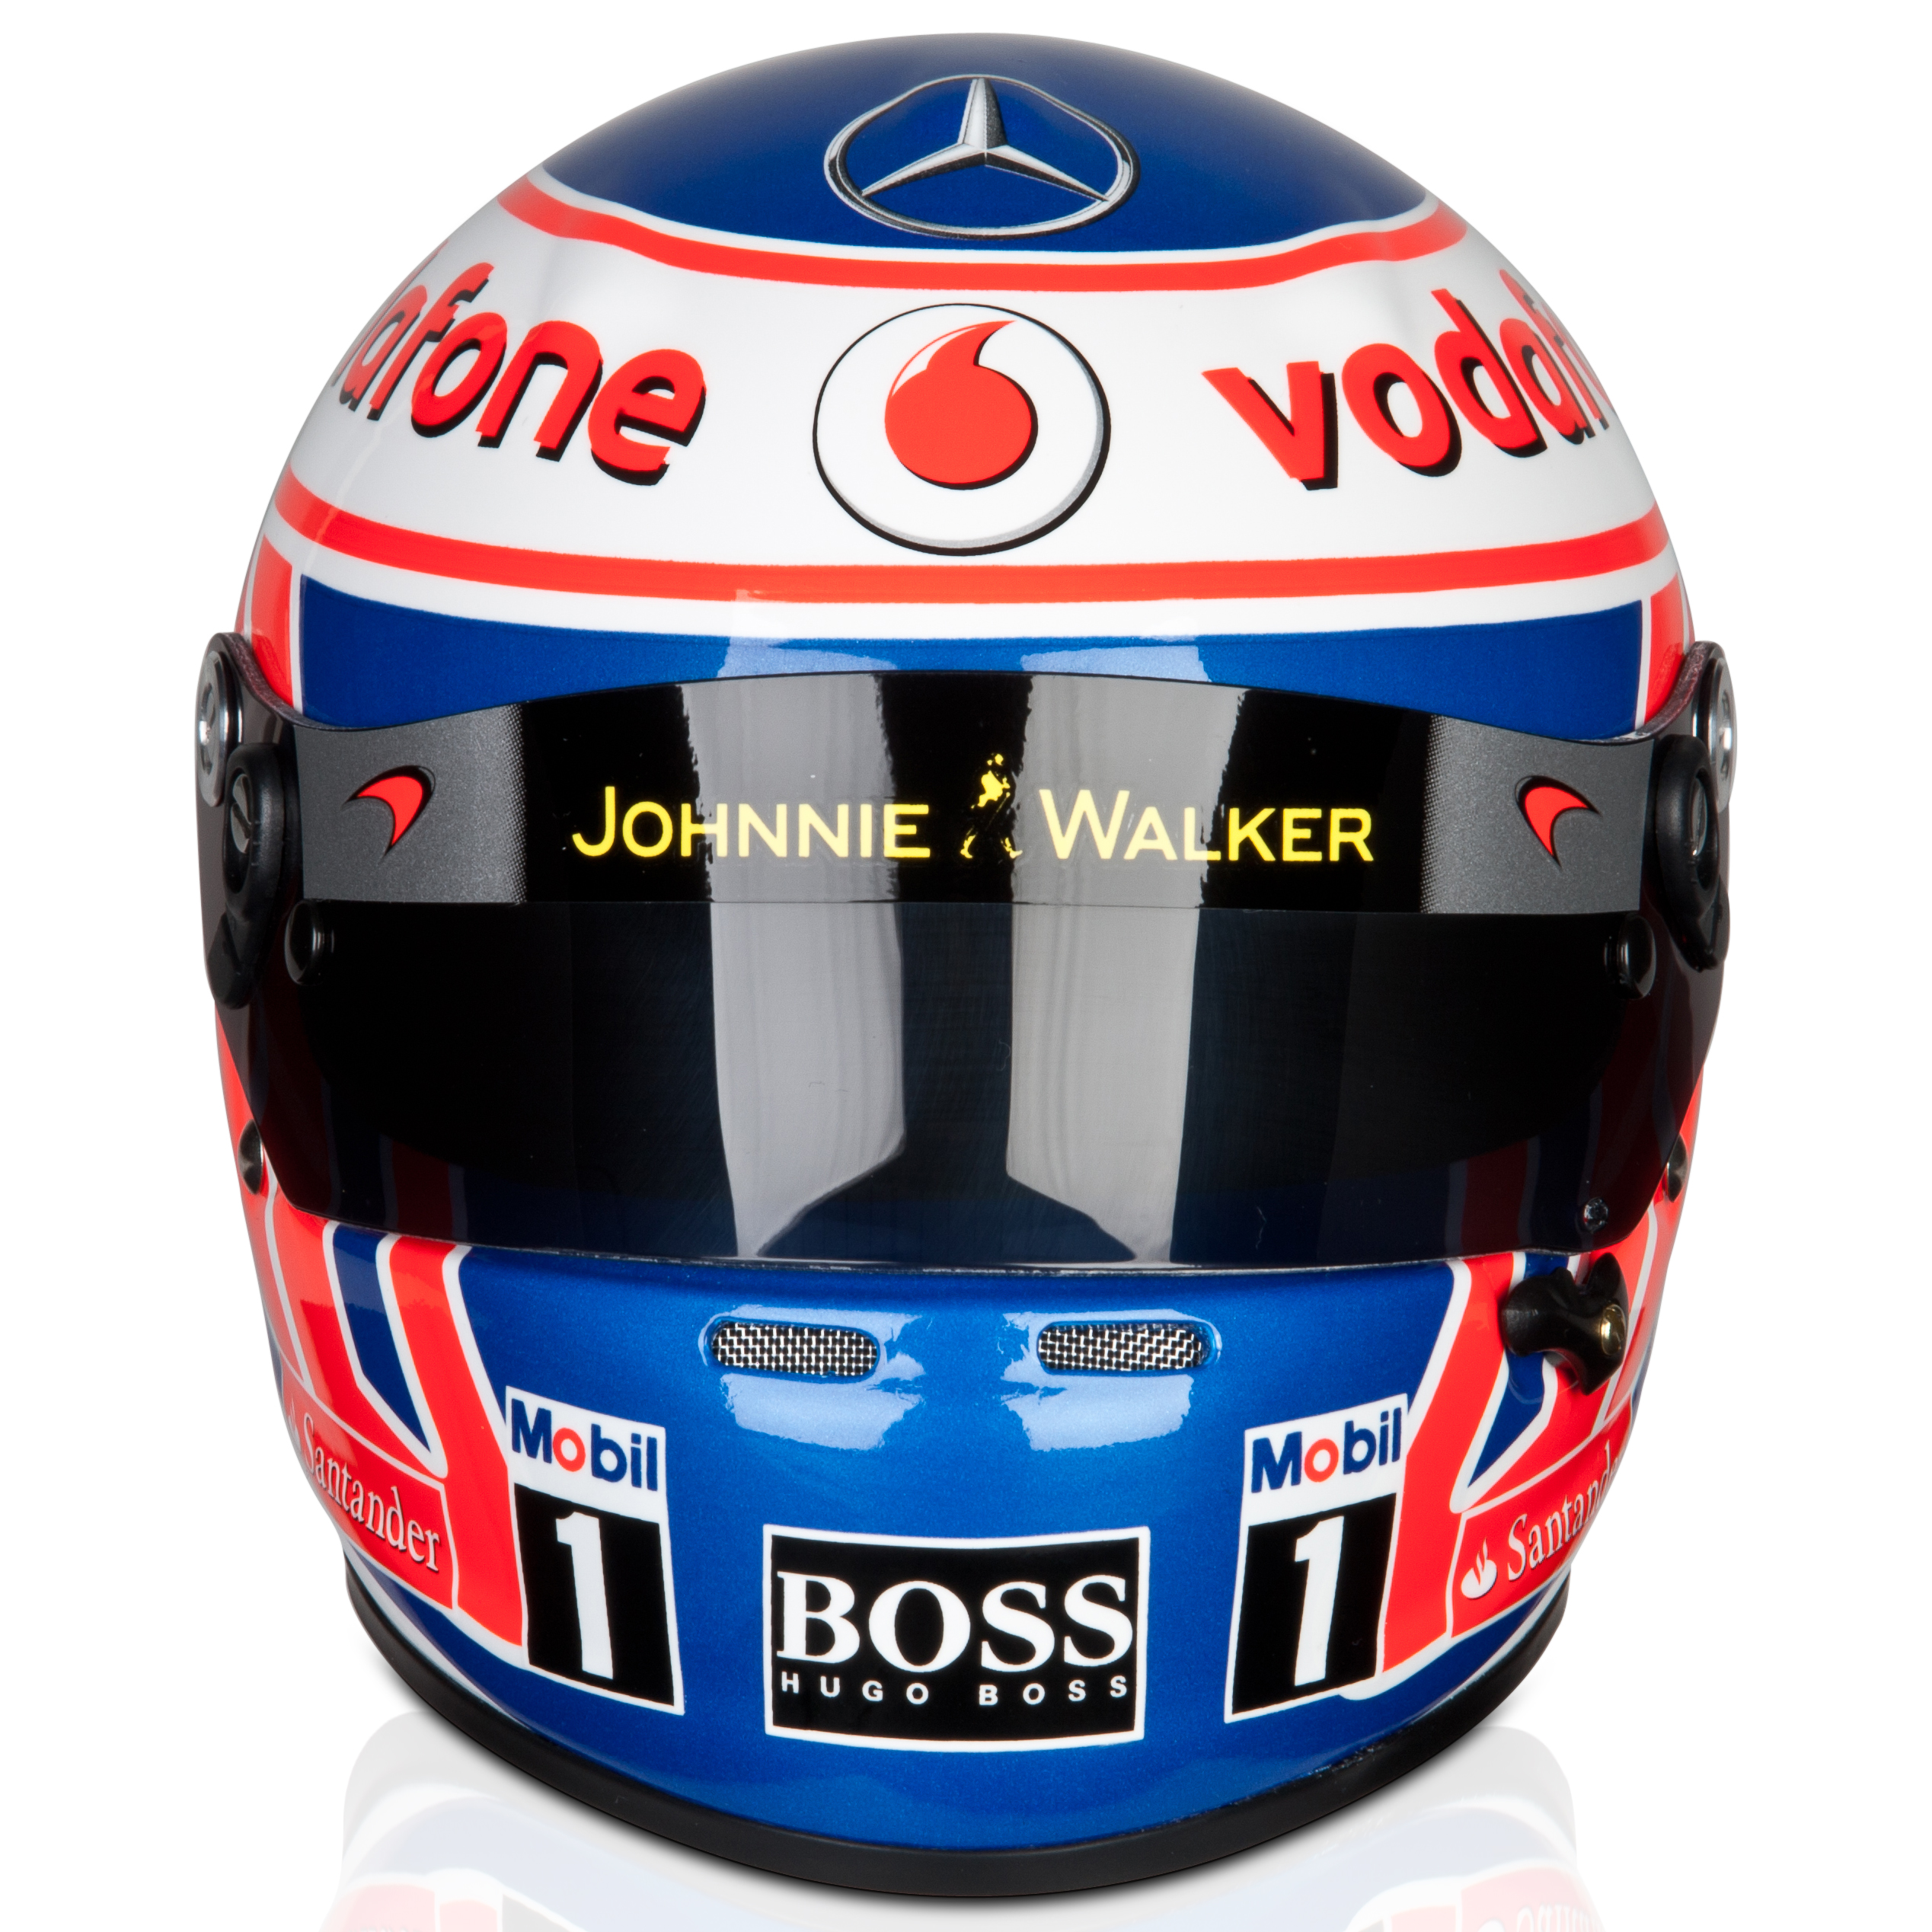 Vodafone McLaren Mercedes Jenson Button 2012 Helmet 1:2 Scale